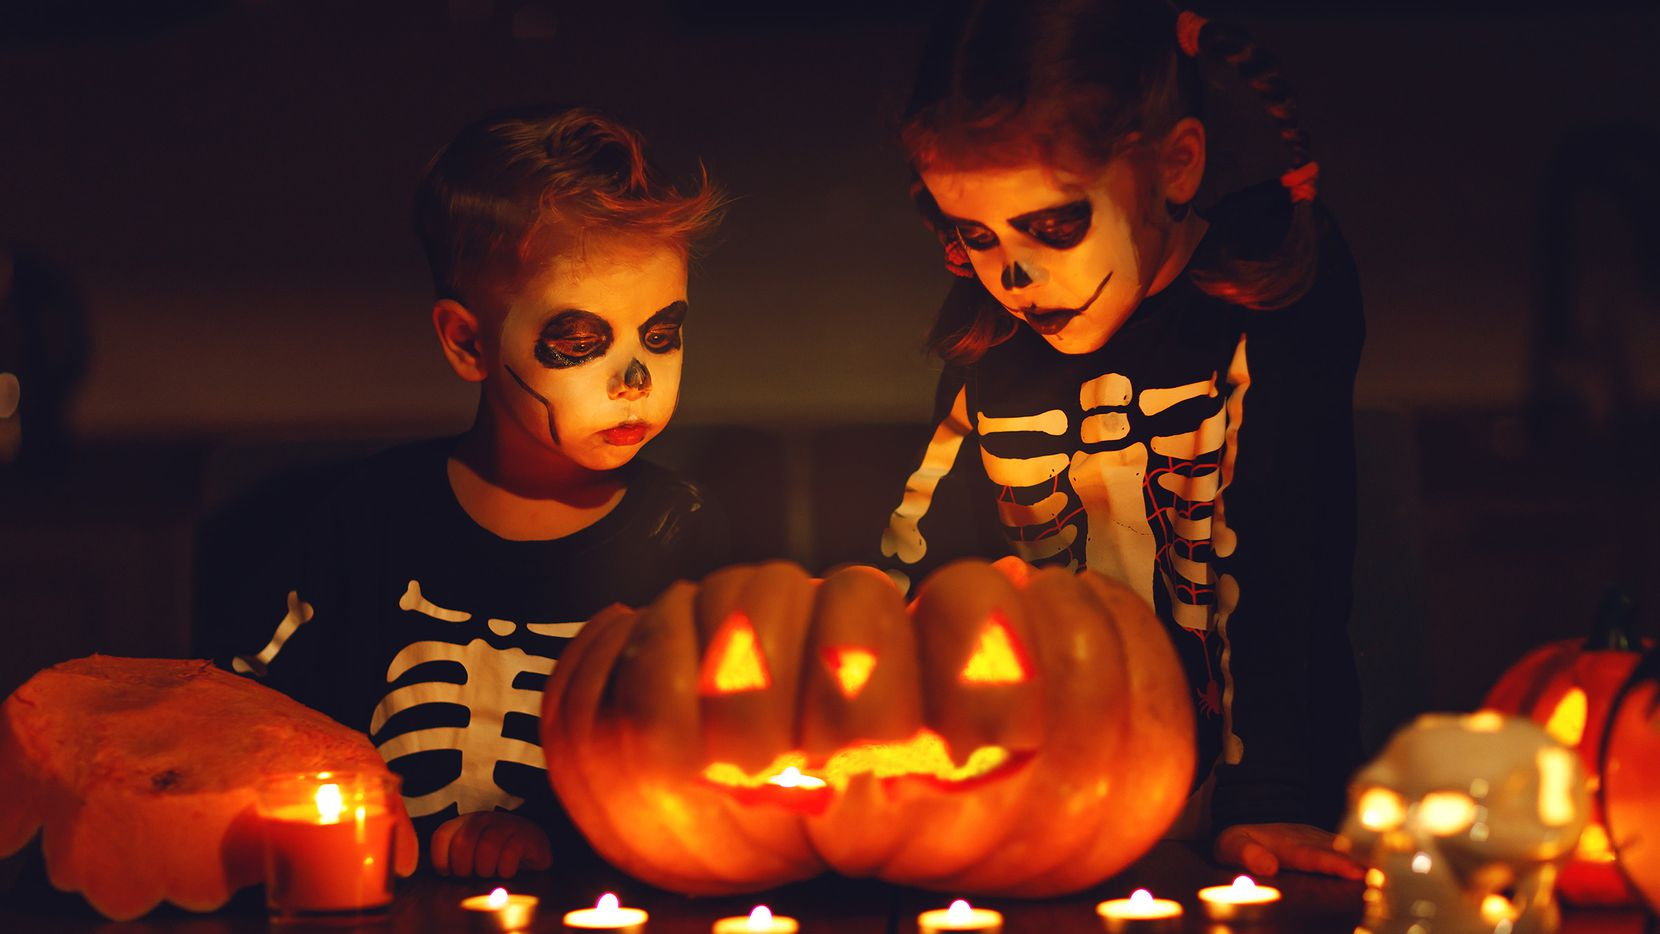 Fifty percent of consumers decorate their yard or home during Halloween.